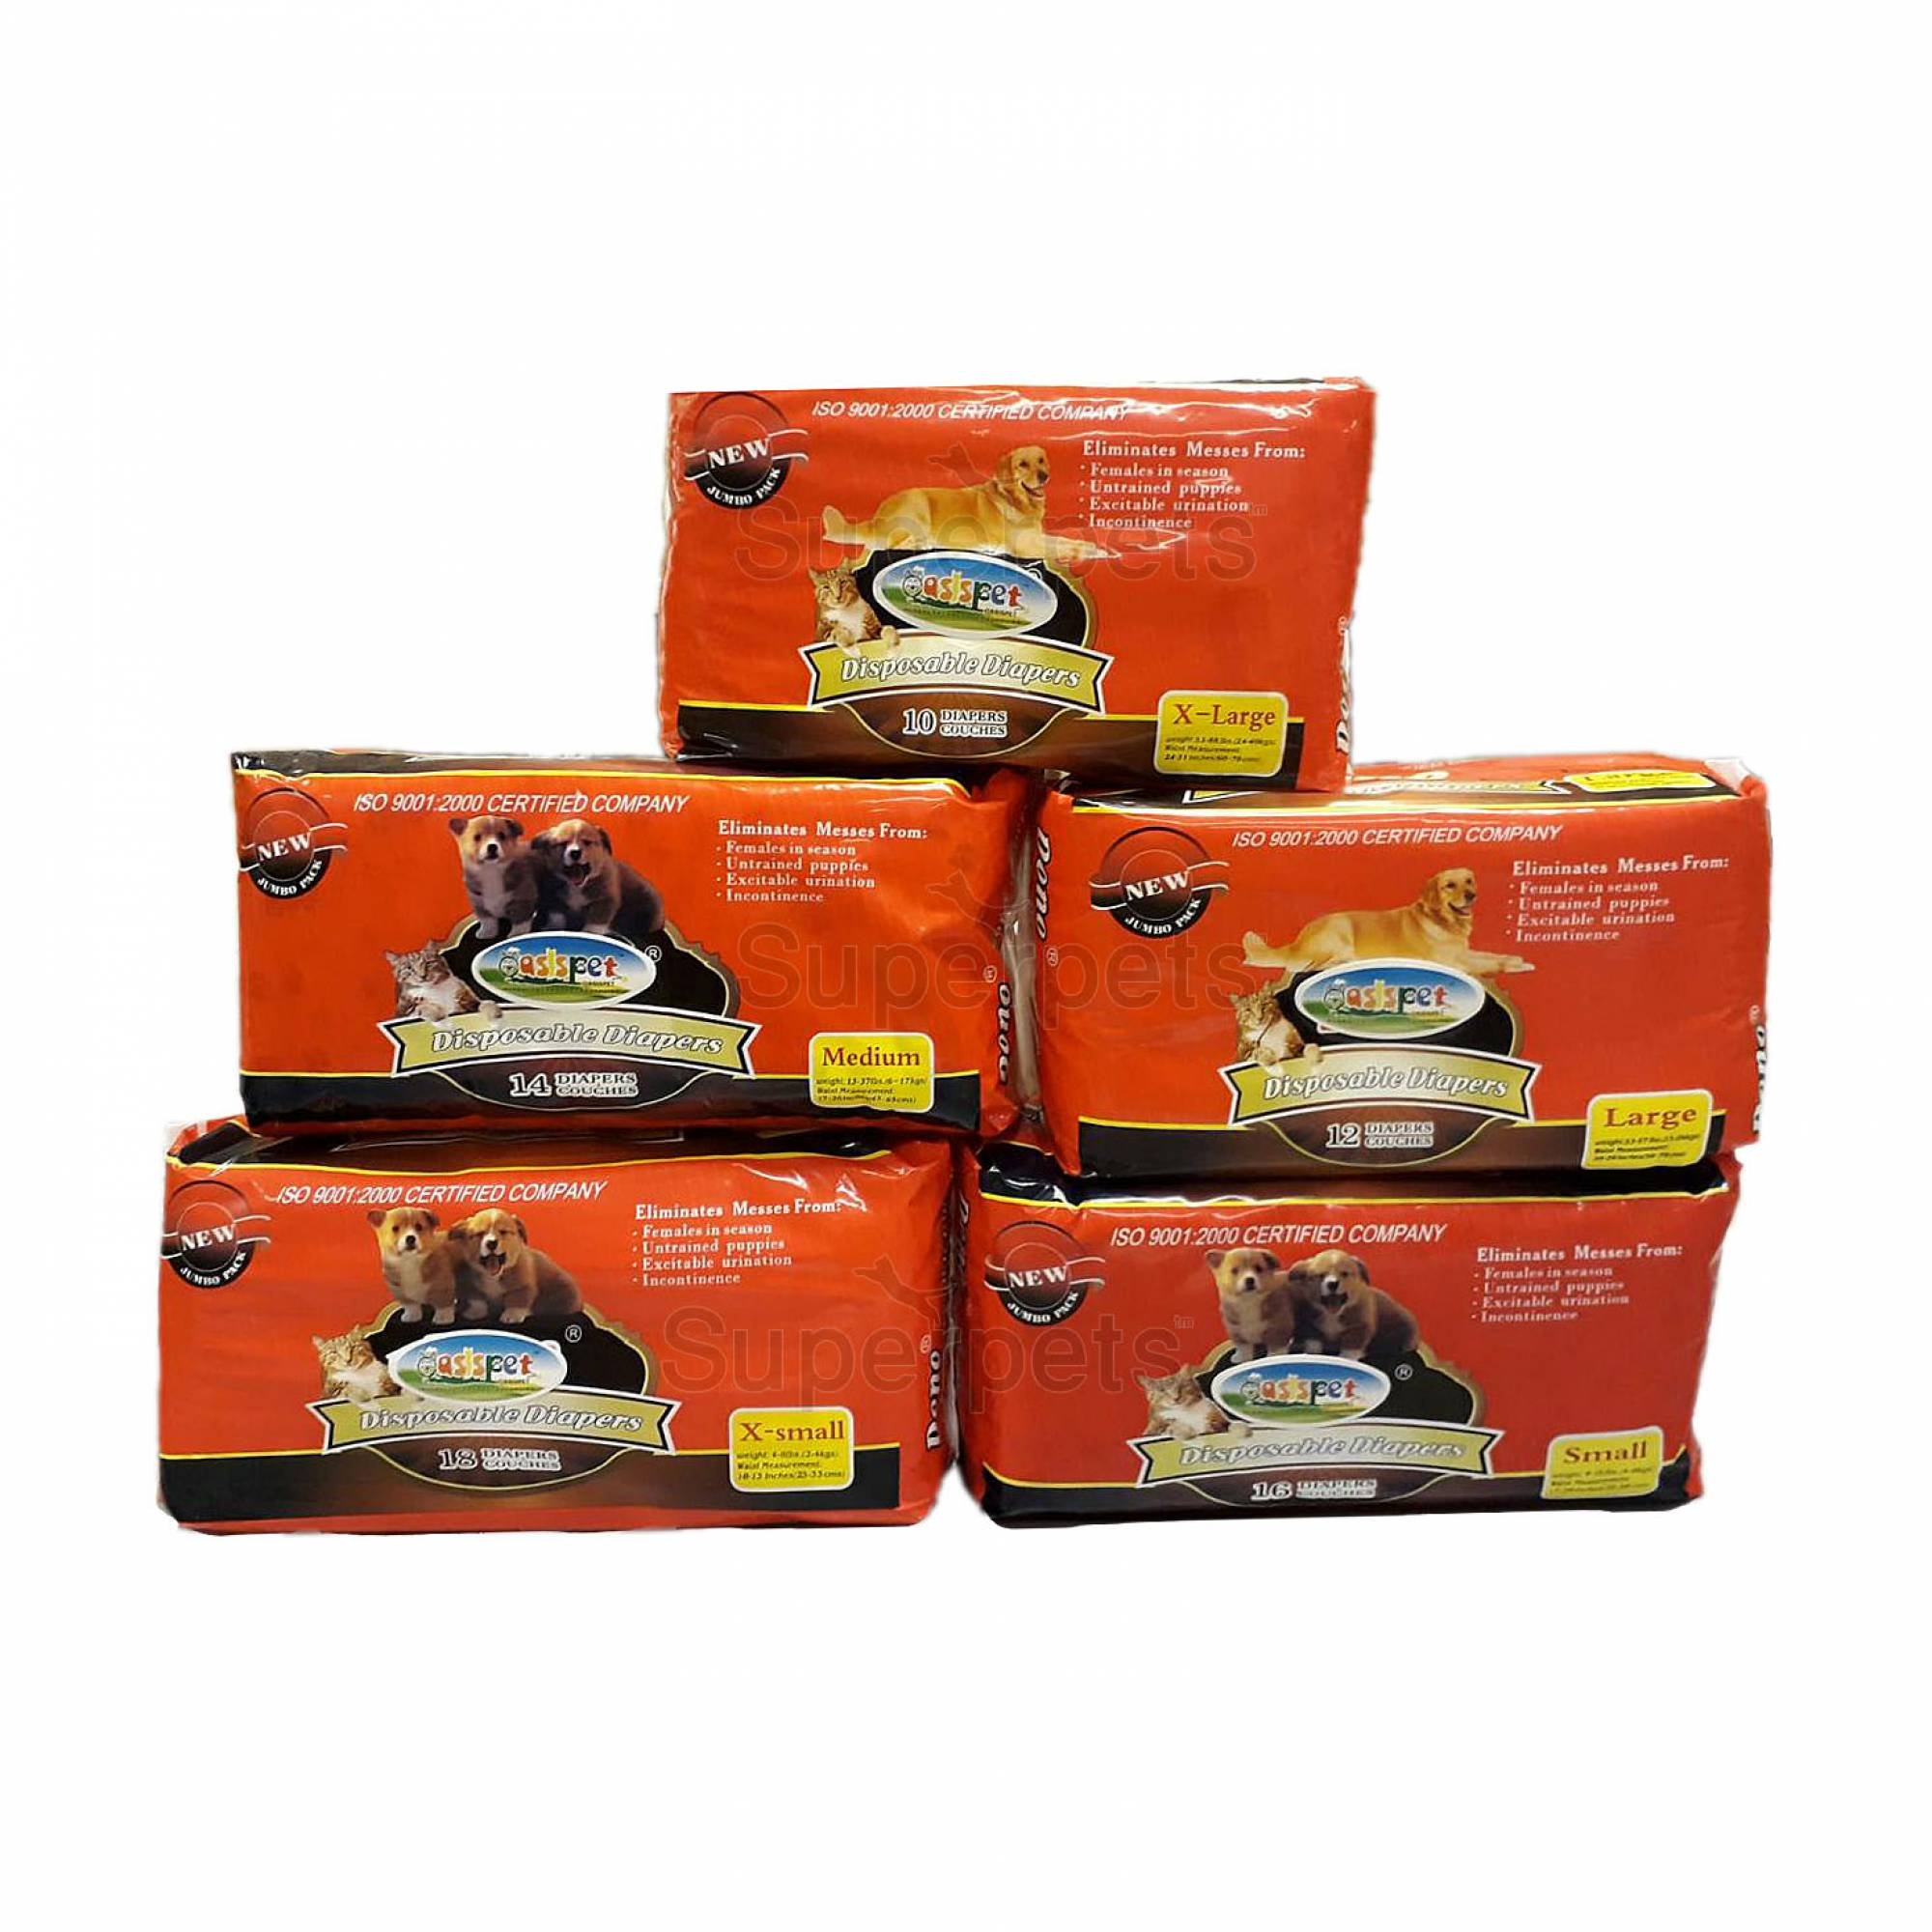 OPSP9981 - Pet Diapers - Large